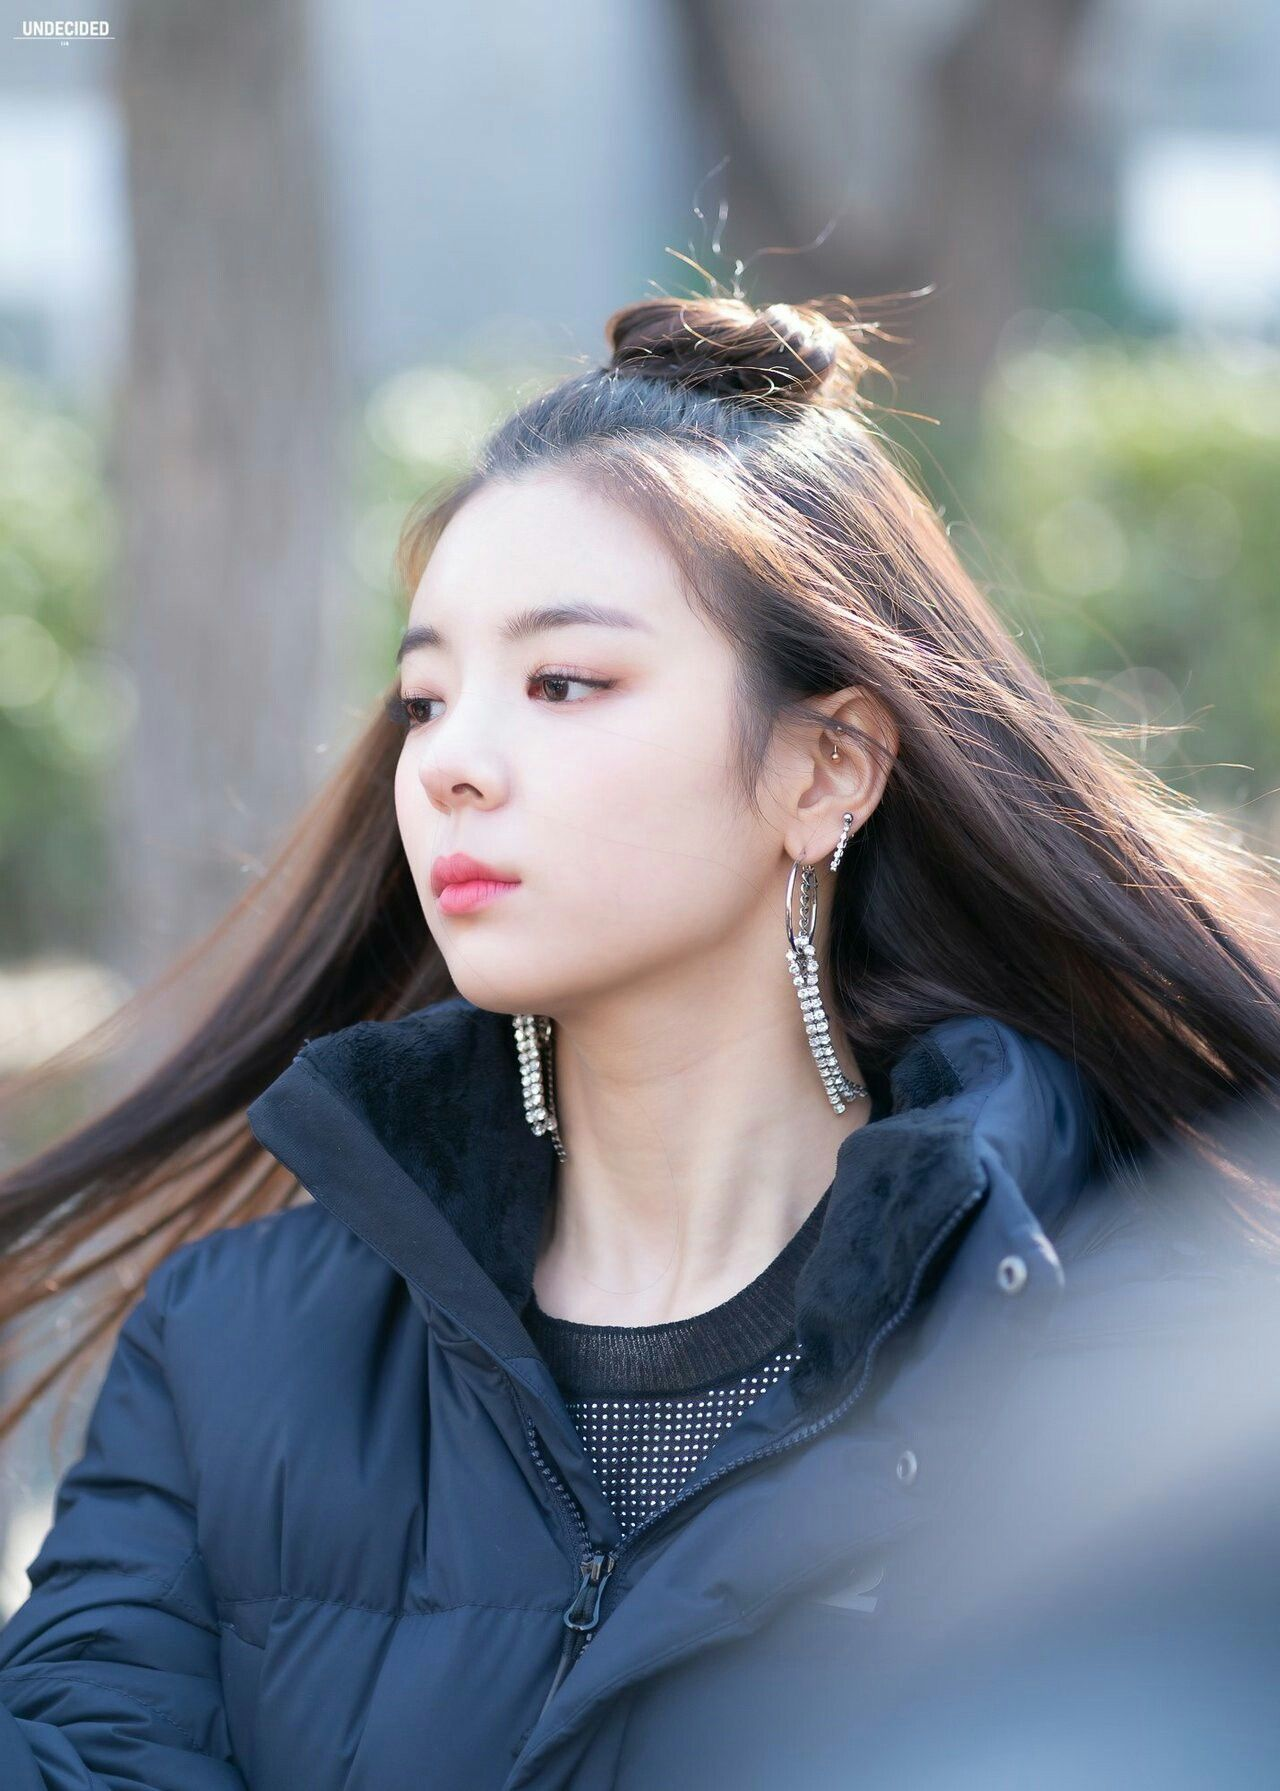 Itzy Lia Itzy Kpop Girls Girl Itzy #lia #weightloss itzy lia has faced a lot of hardships since debuting. itzy lia itzy kpop girls girl